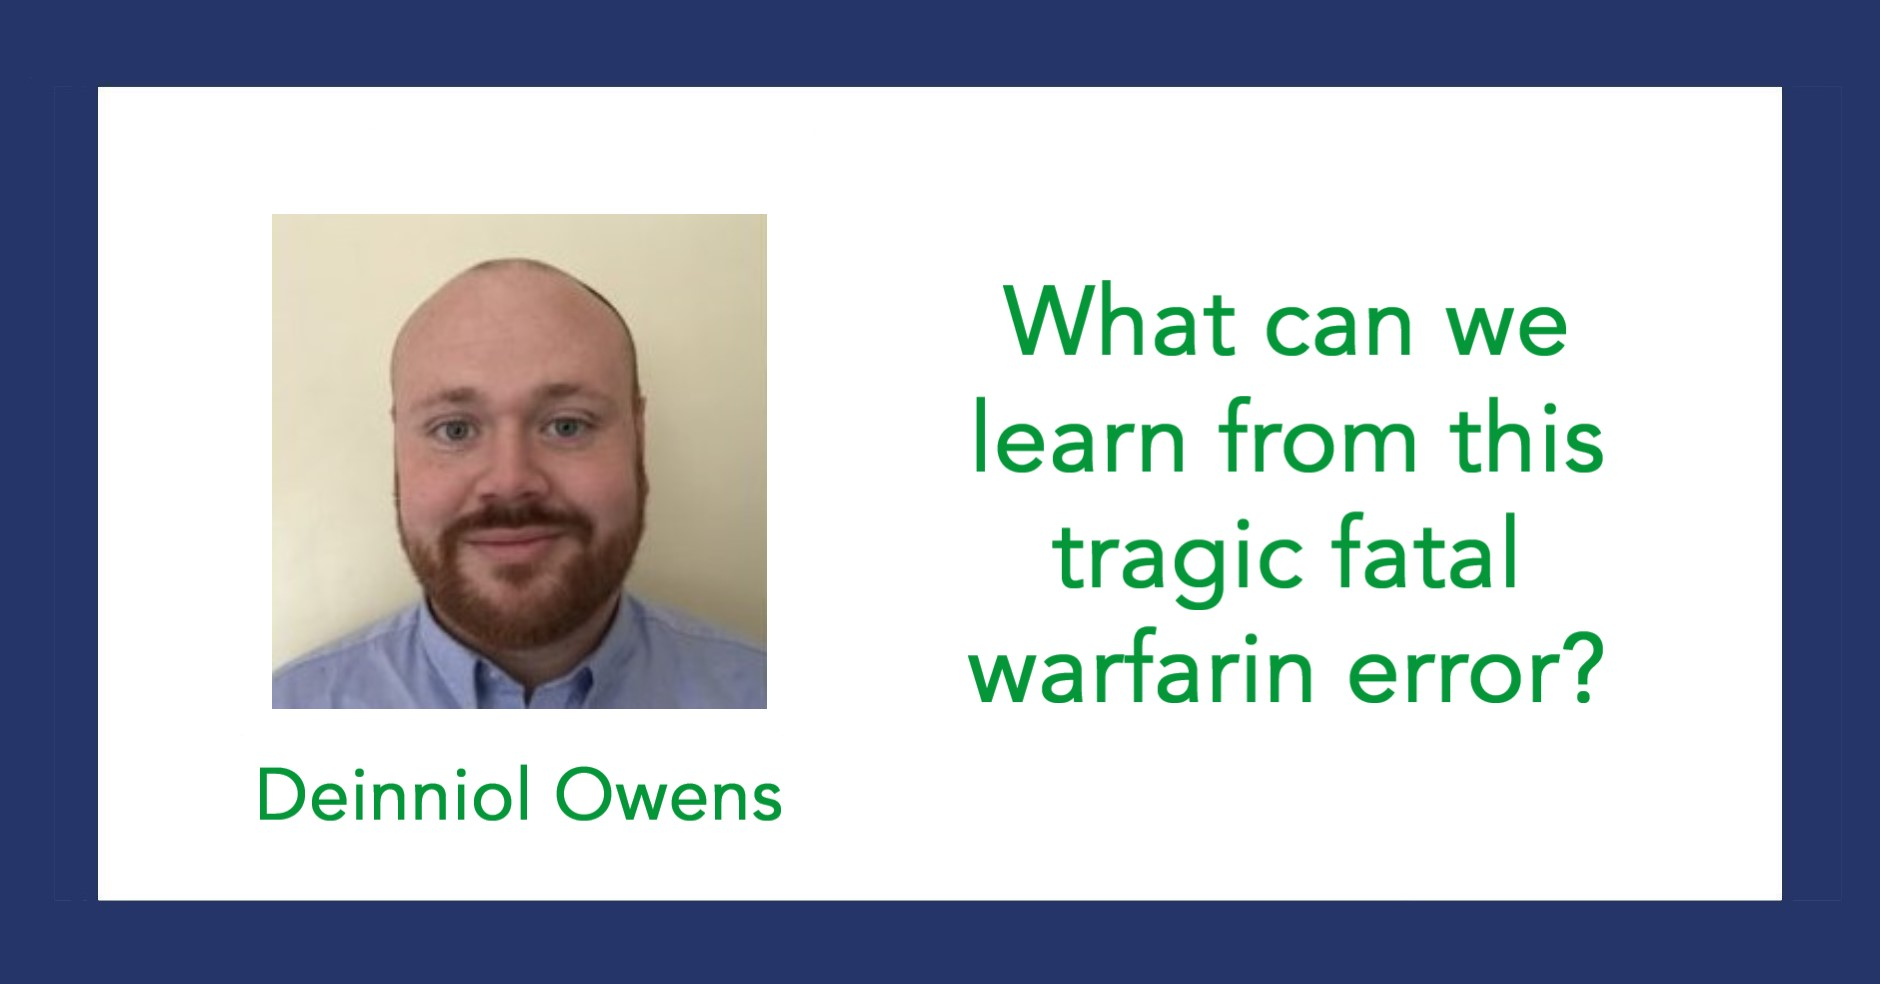 What can we learn from this tragic fatal warfarin error?